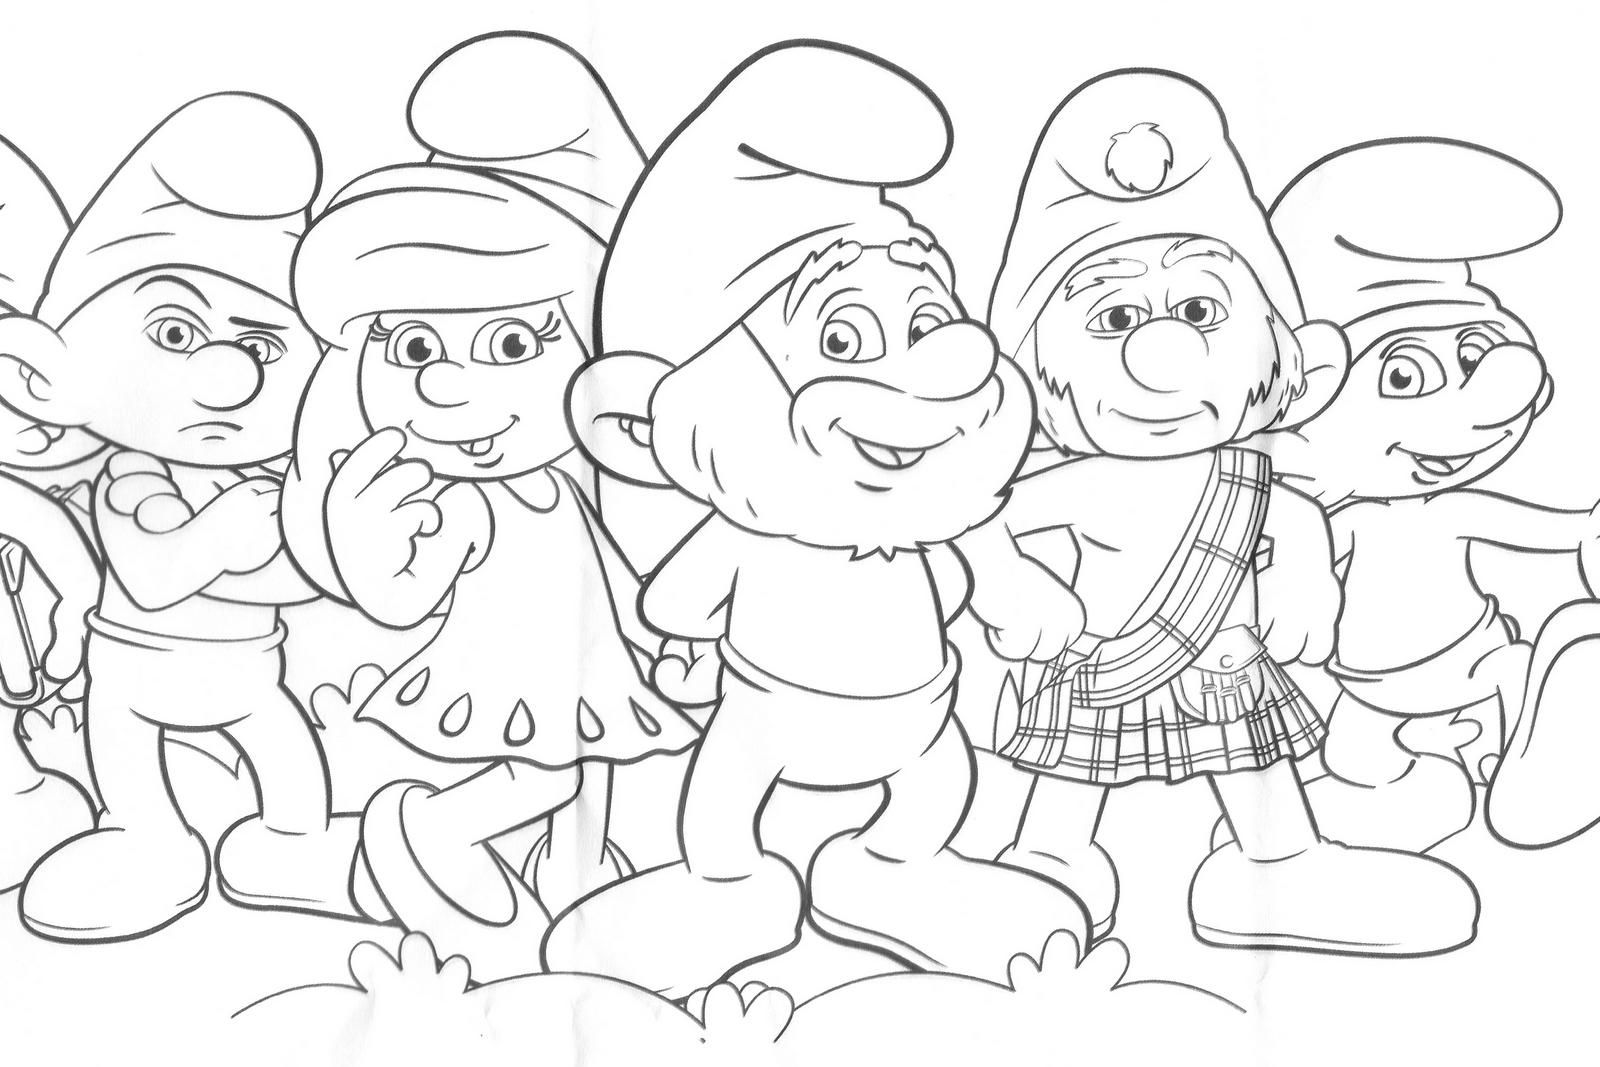 The Smurfs Smurfette Catapillar On Finger Coloring Page 2